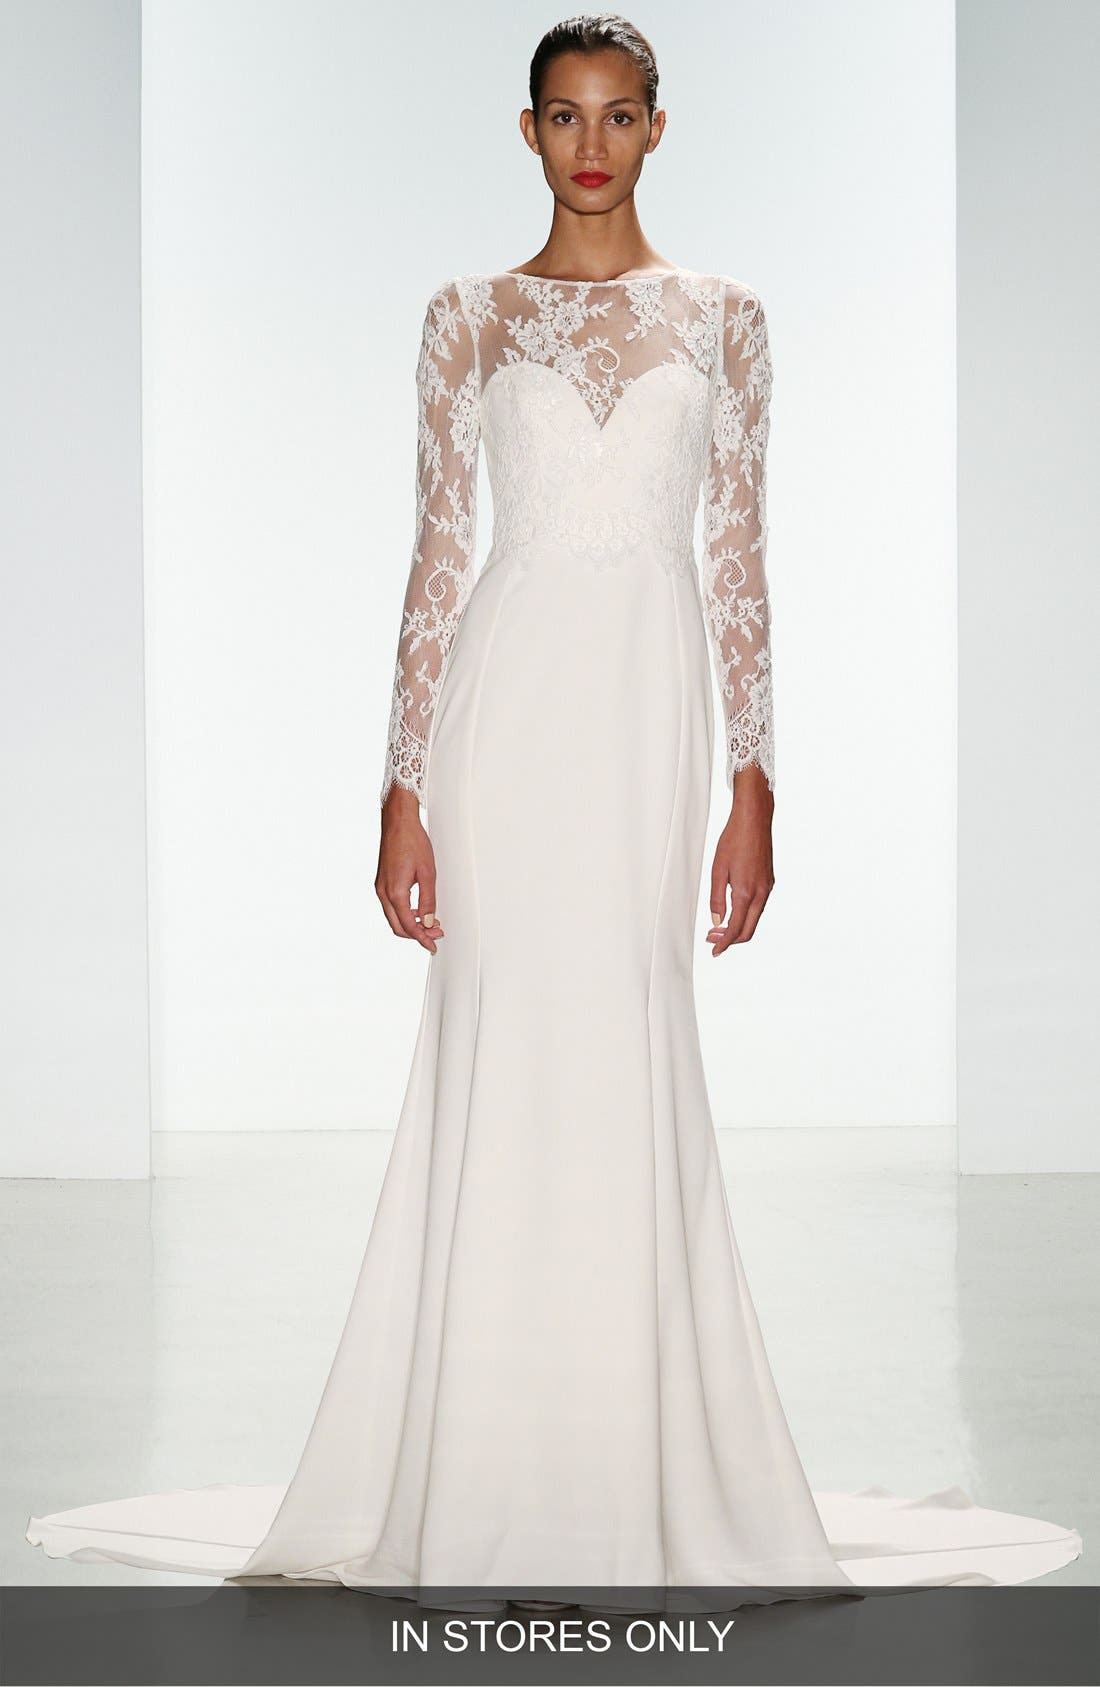 Noelle Long Sleeve Lace & Crepe Gown,                             Main thumbnail 1, color,                             IVORY